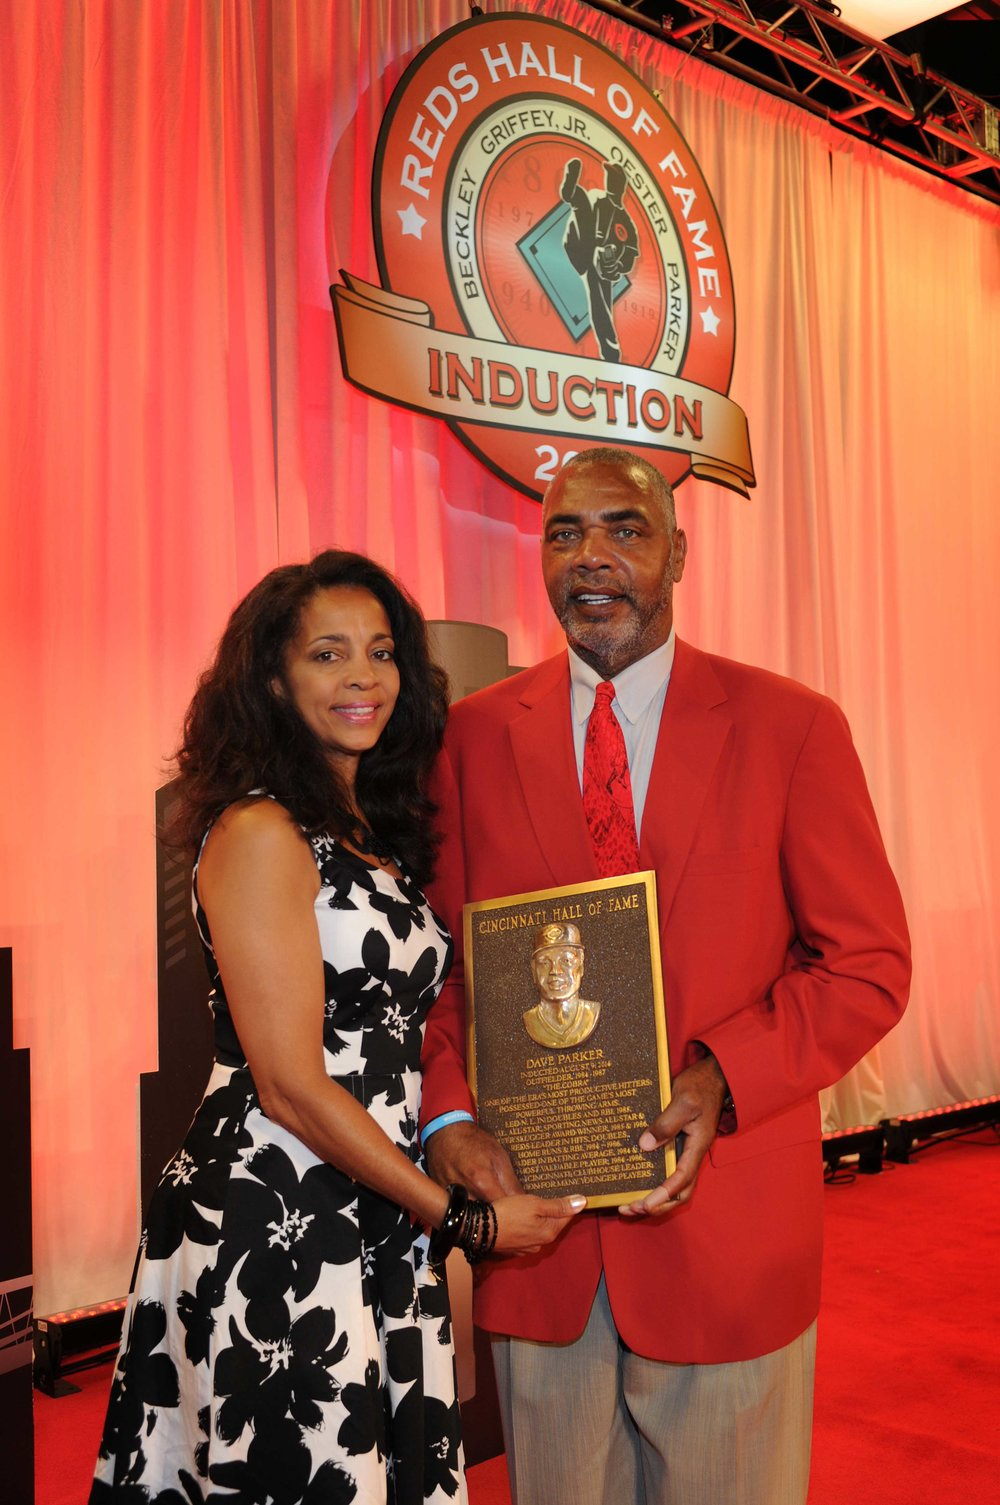 Dave Parker with wife, Kellye, at Reds Hall of Fame Gala, 2014